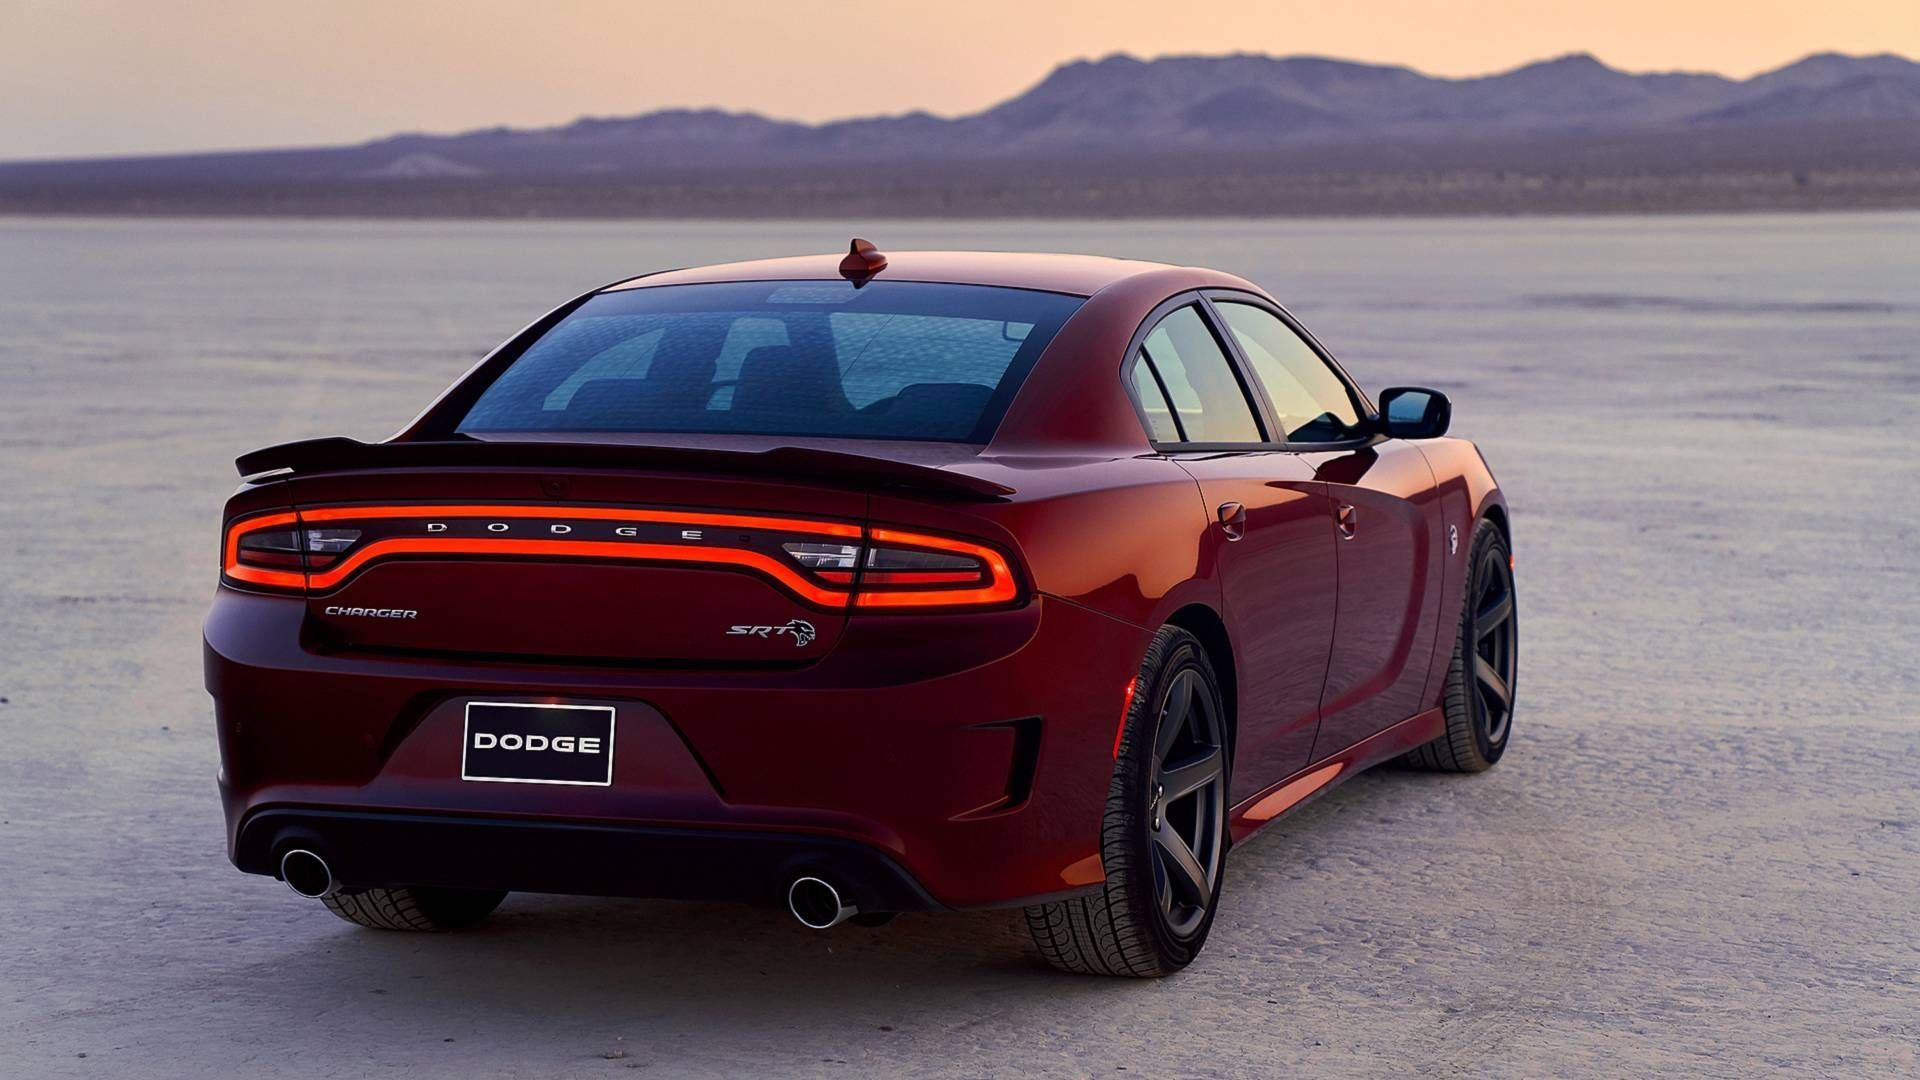 2019 Dodge Charger Rt Price And Review With Images Dodge